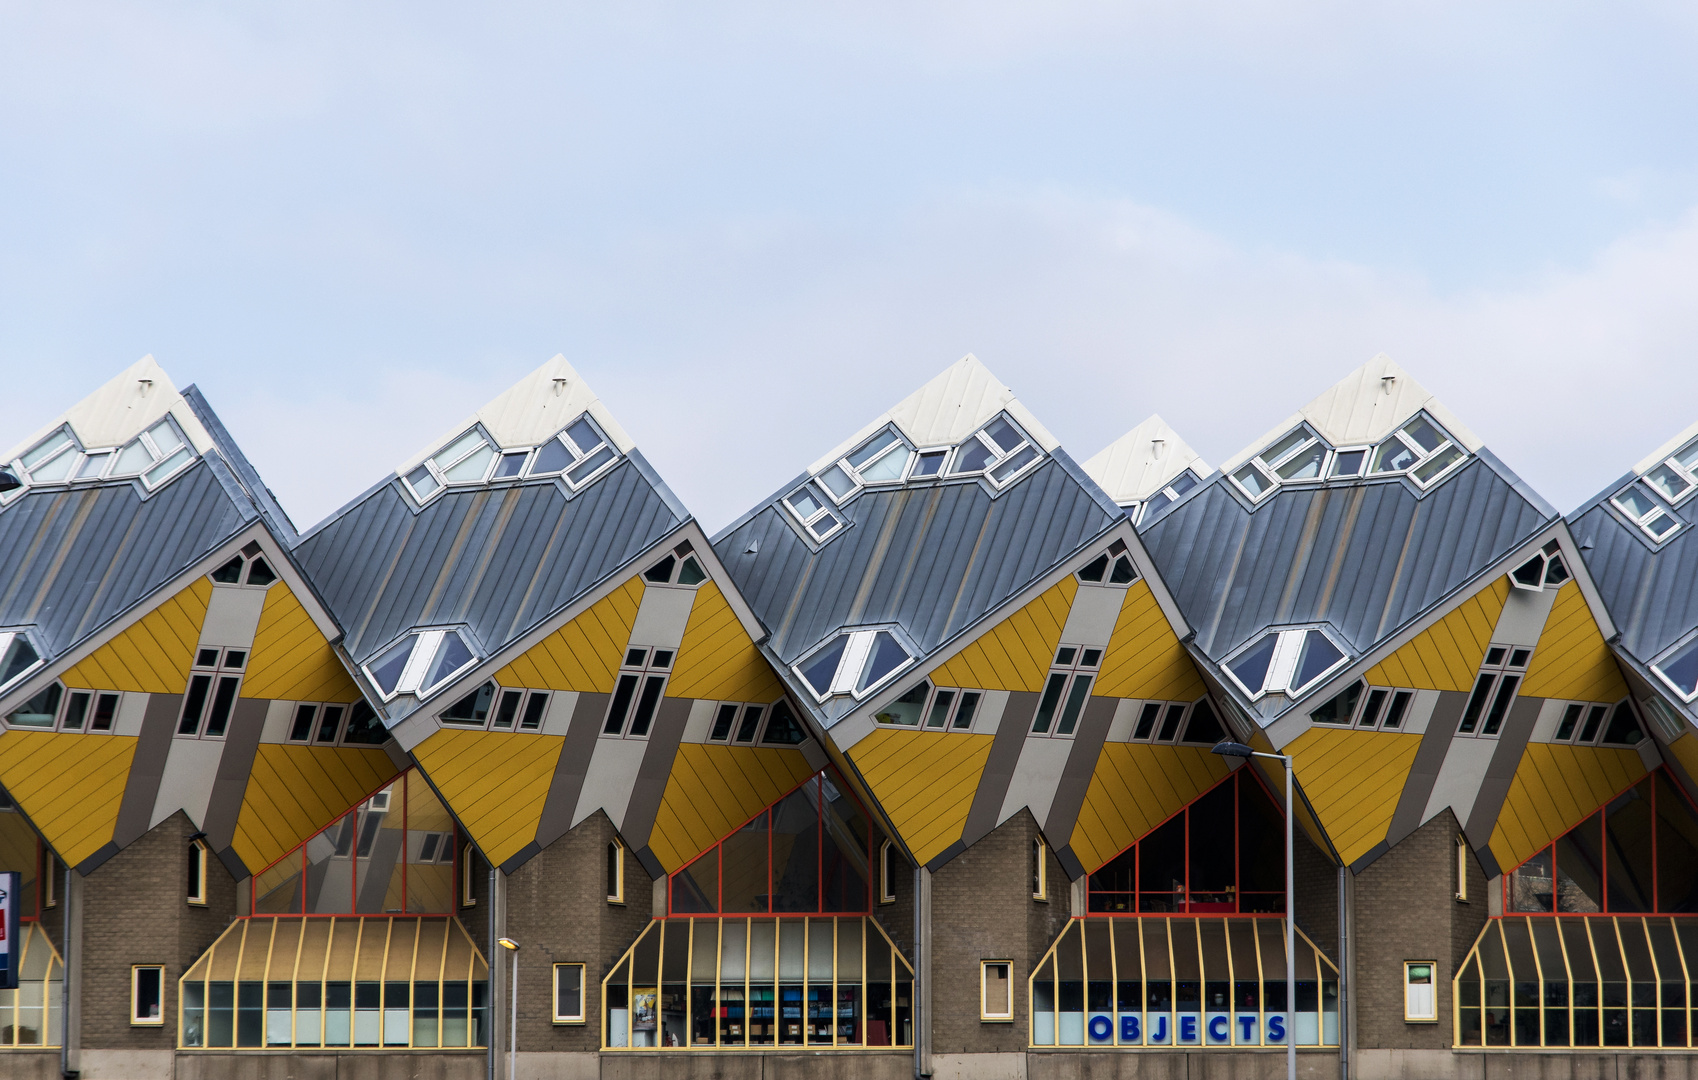 Moderne architektur in rotterdam foto bild world - Architektur rotterdam ...